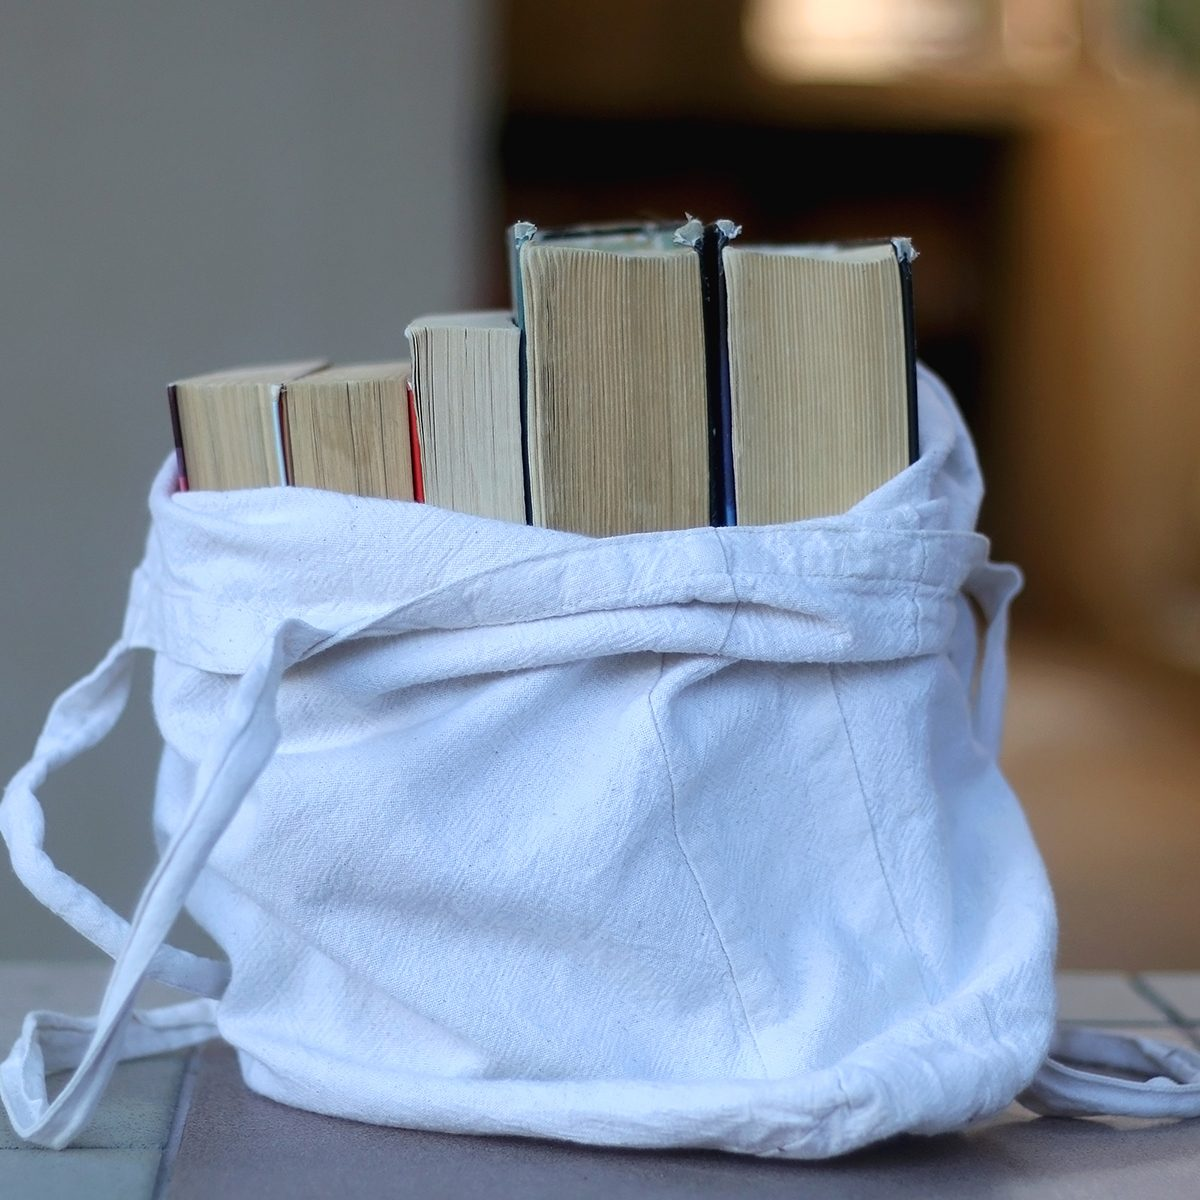 Canvas tote bag filled with old books. Selective focus.